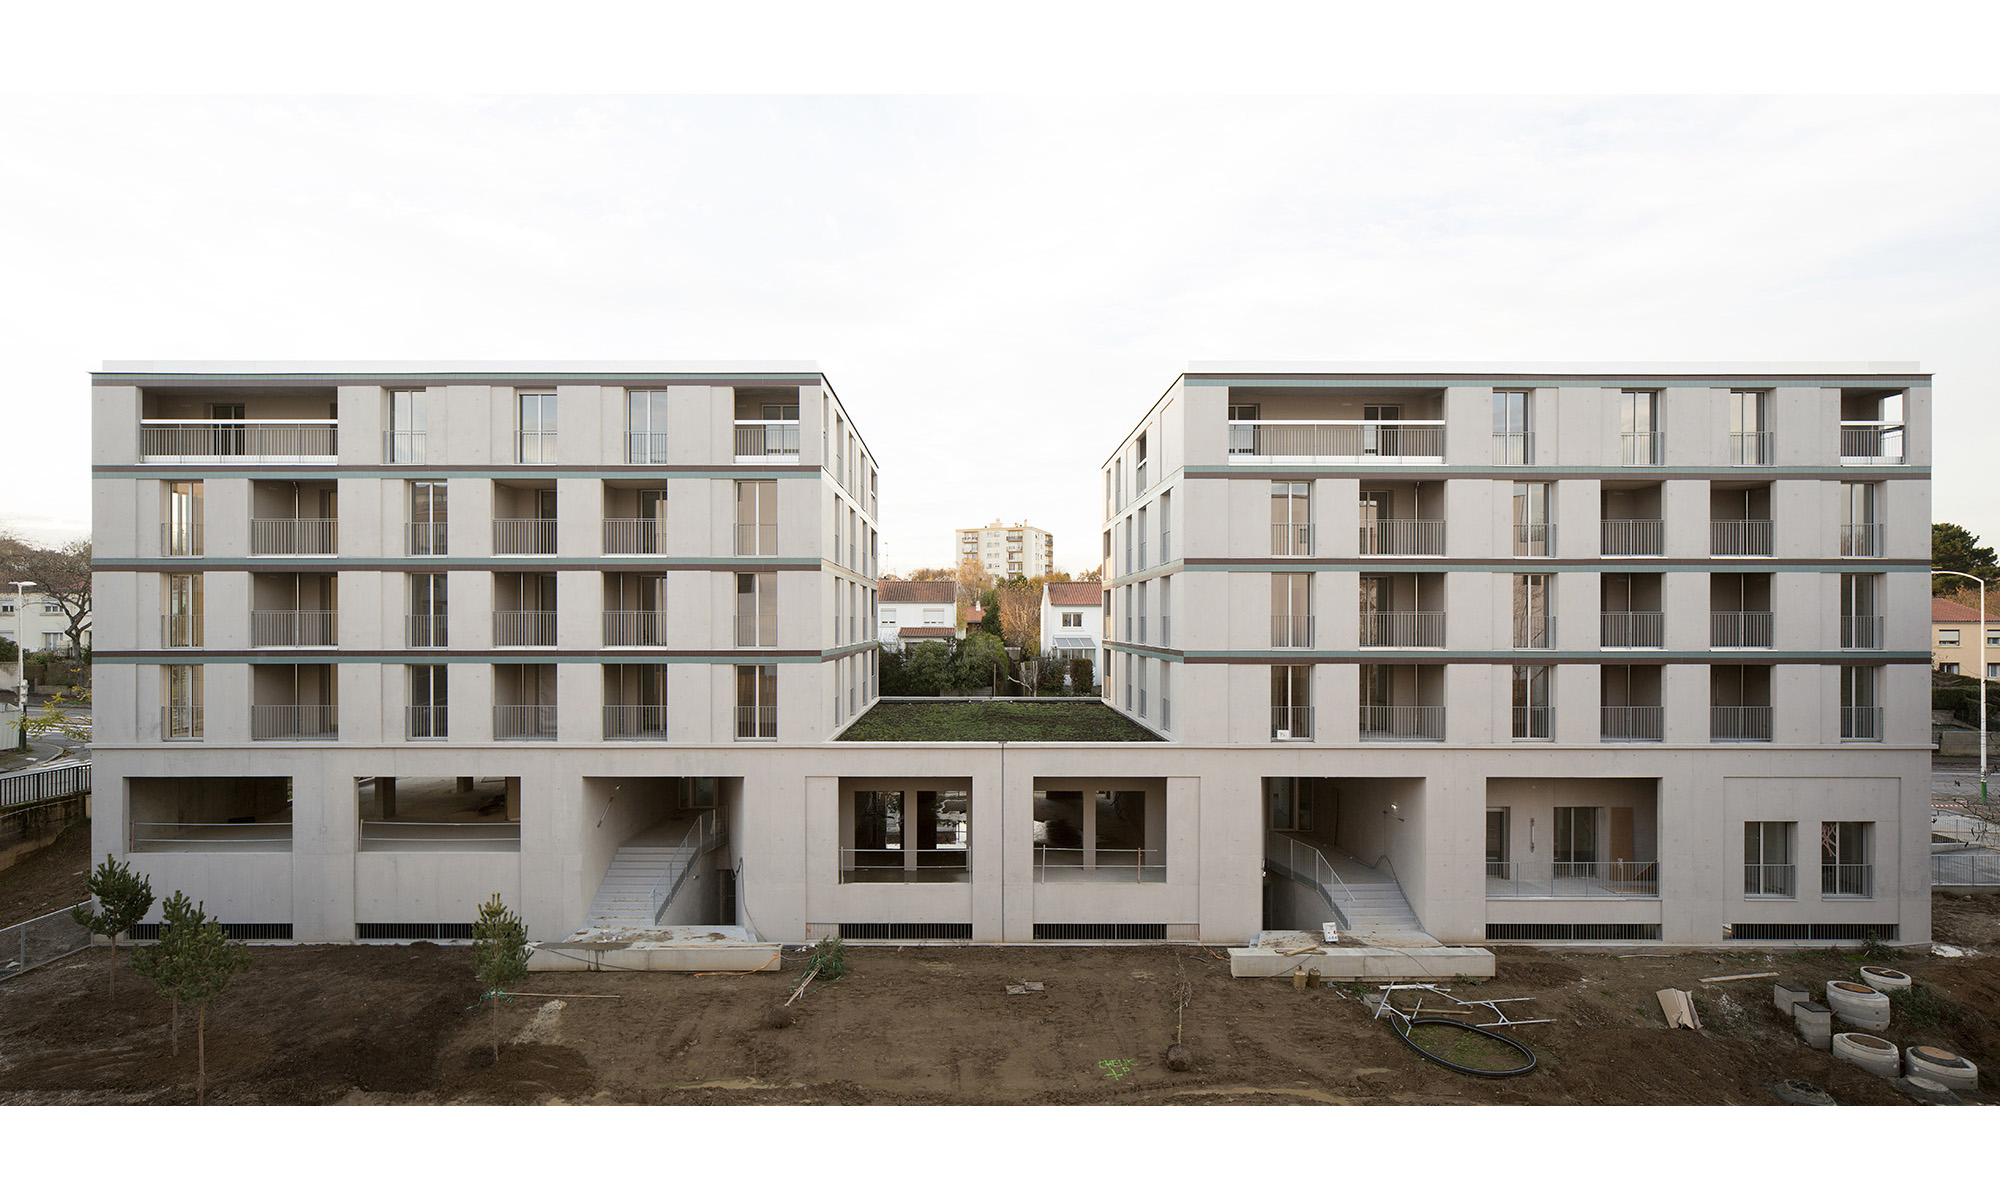 LOGEMENTS COLLECTIFS - DERVALLIERES